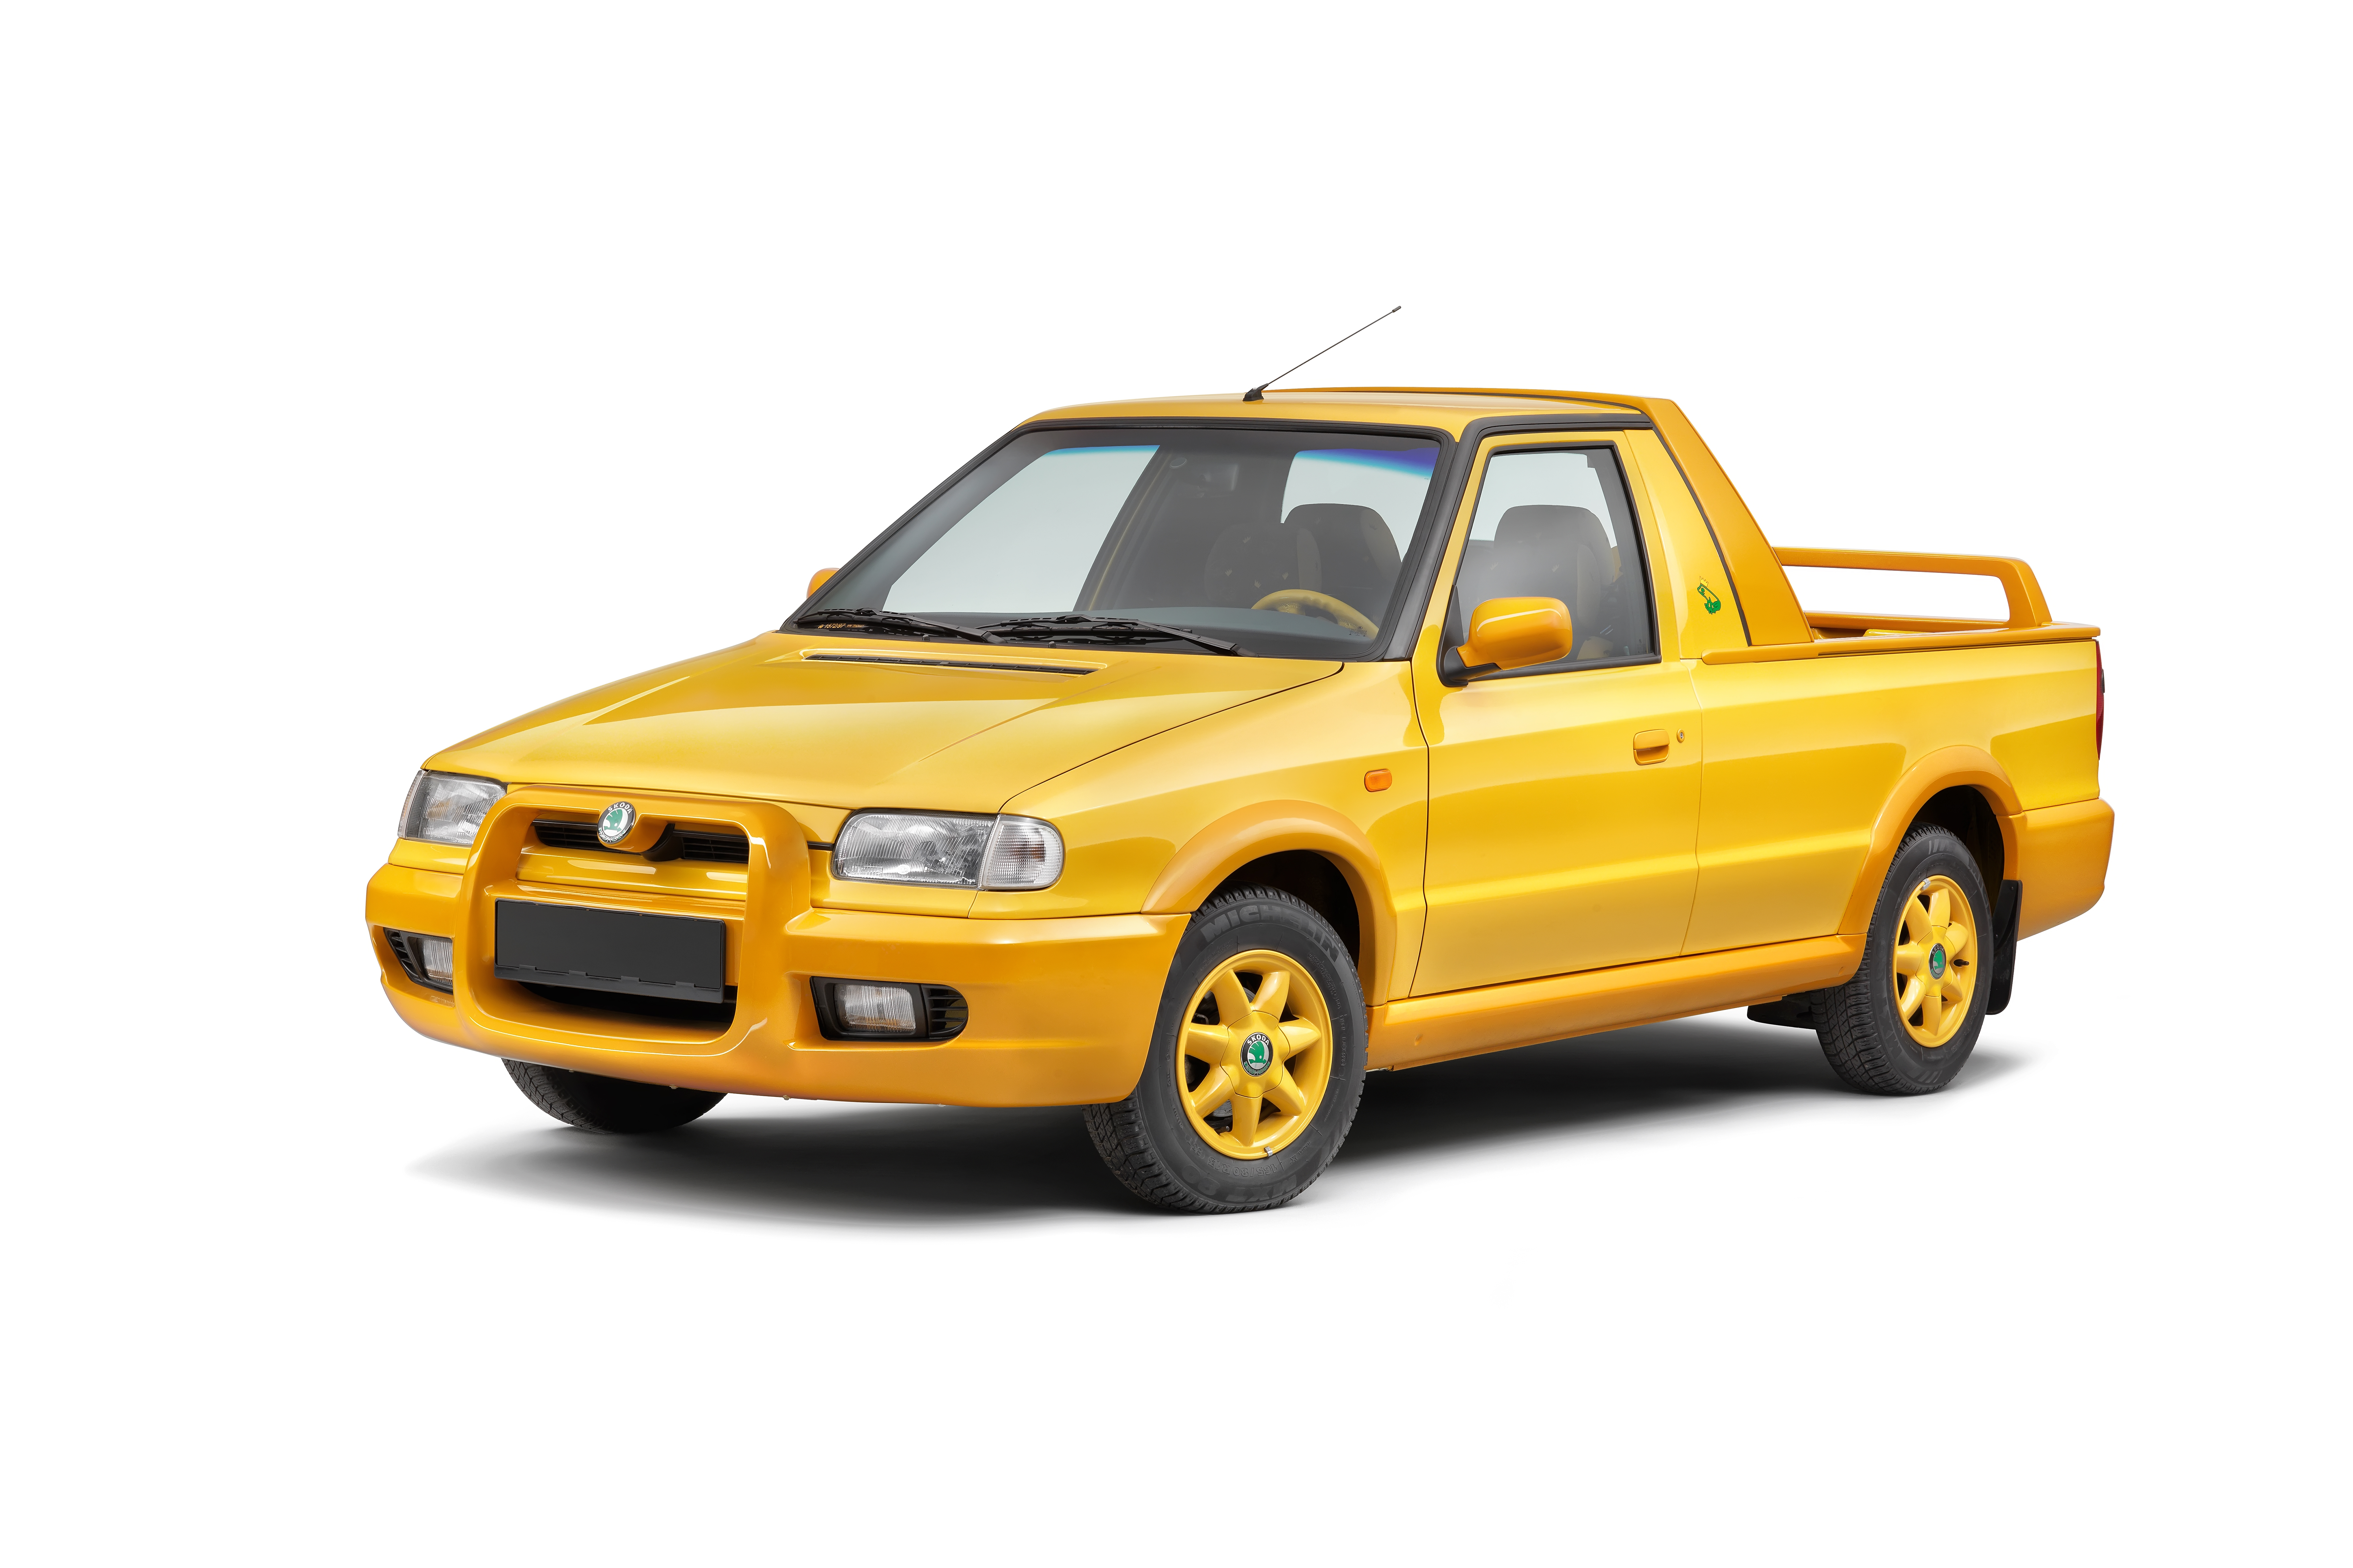 Lesser-known models from SKODA AUTO's 125-year history: The SKODA FELICIA Fun - Image 4